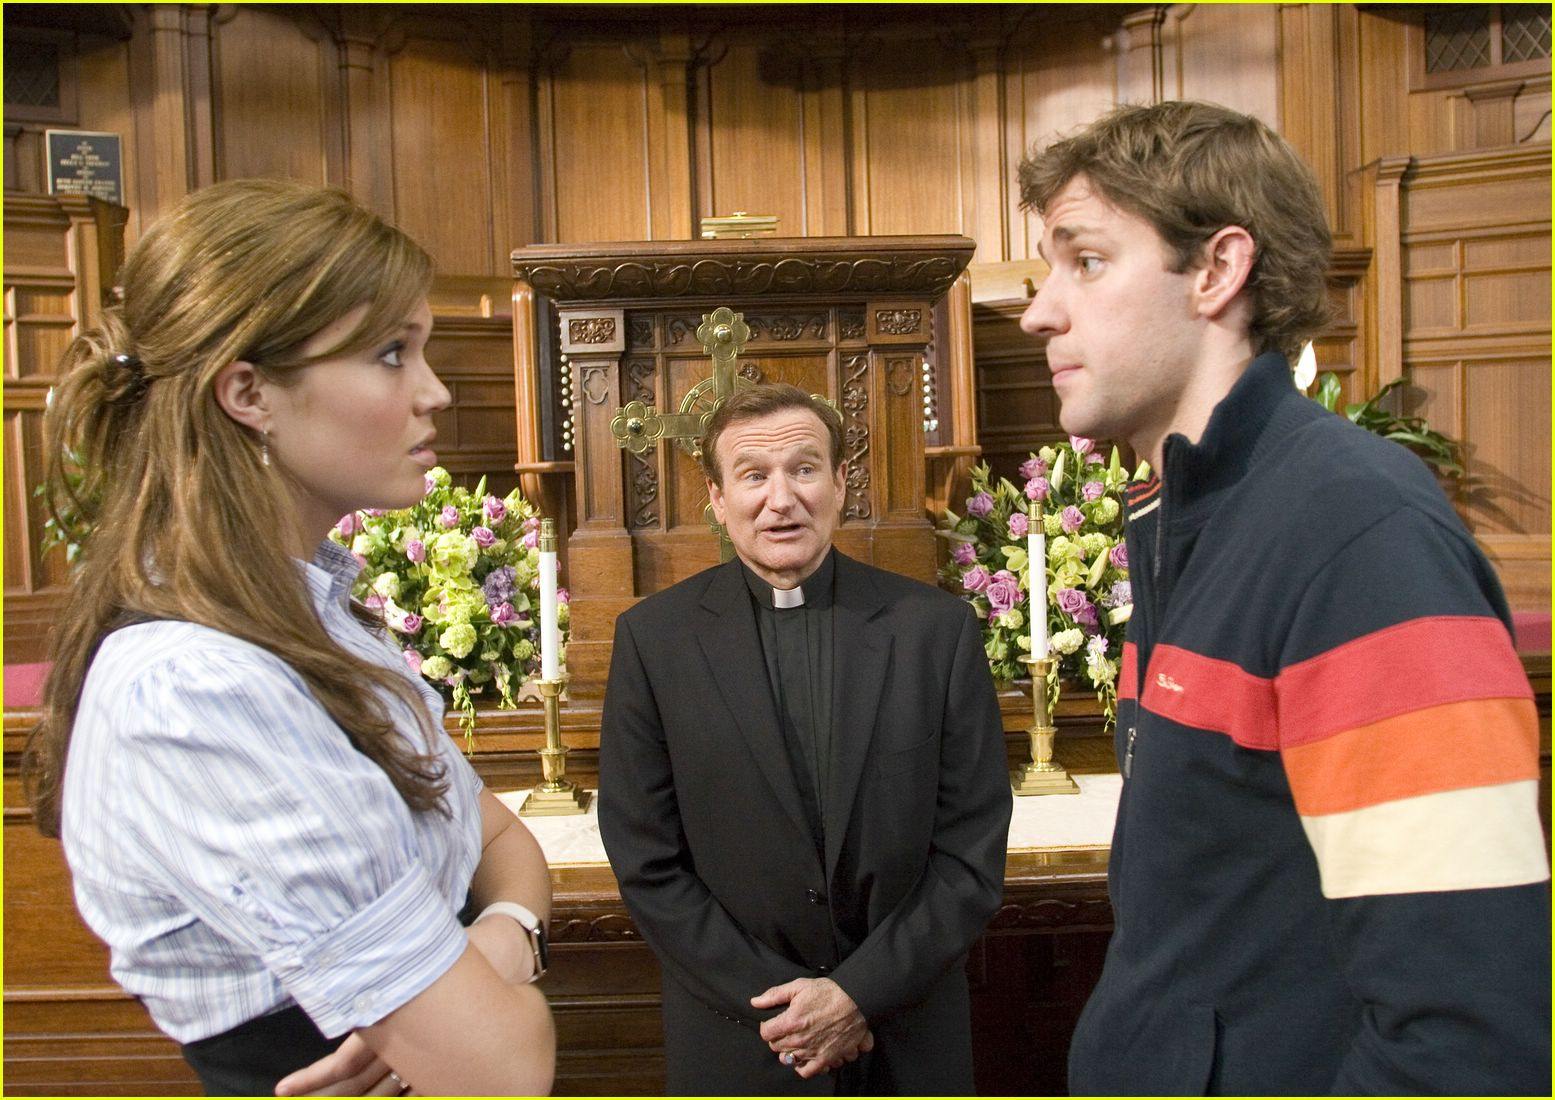 Mandy Moore, Robin Williams and John Krasinski in